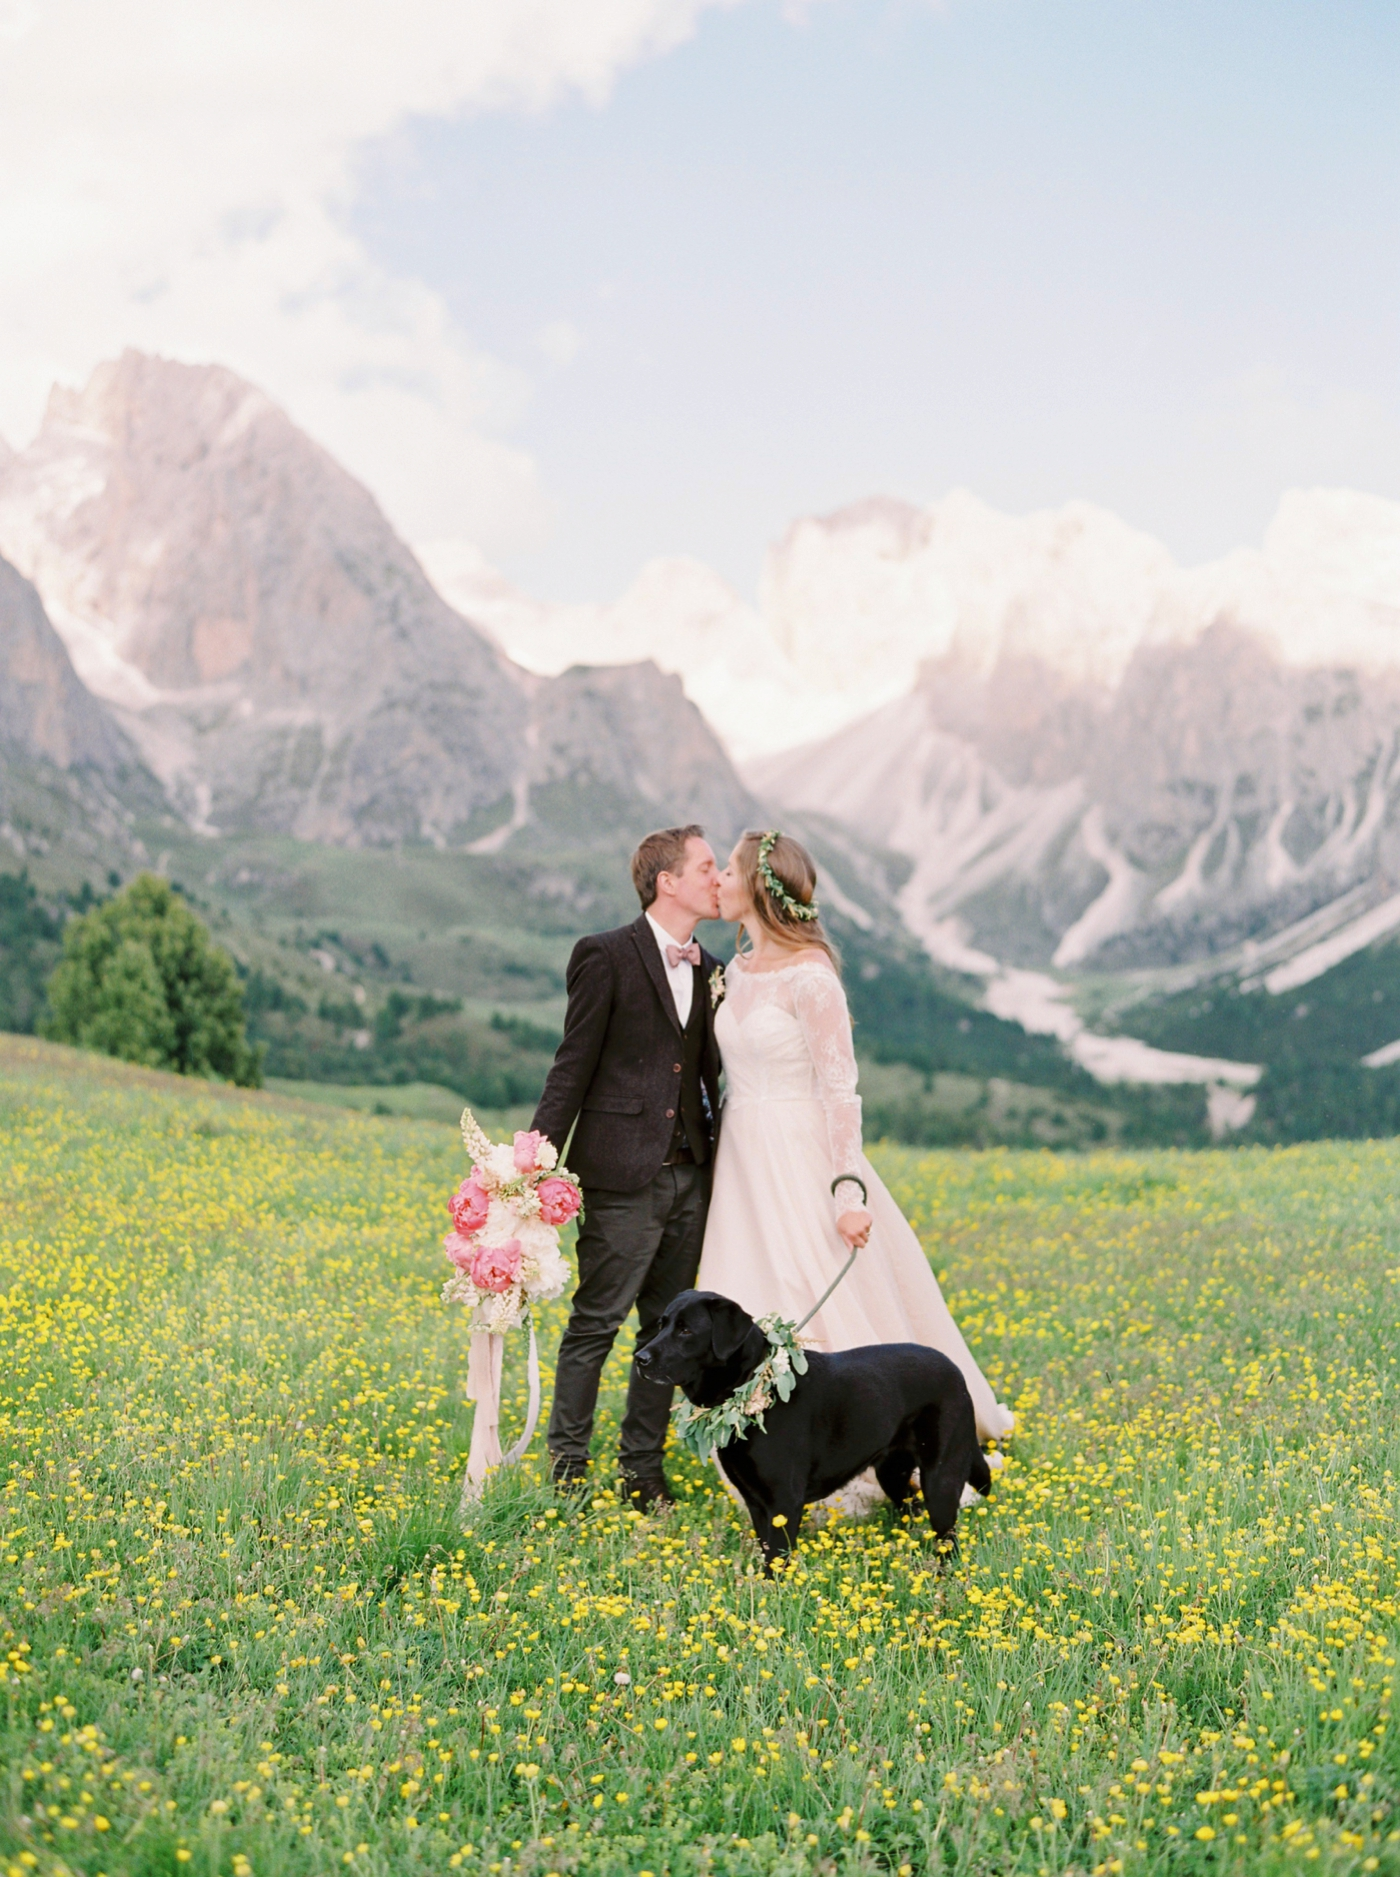 Italy wedding photographers | Dolomites mountain top wedding | pink and white peony bouquet | long sleeve flowing wedding dress | Bride and groom portrait | justine milton fine art film photographers